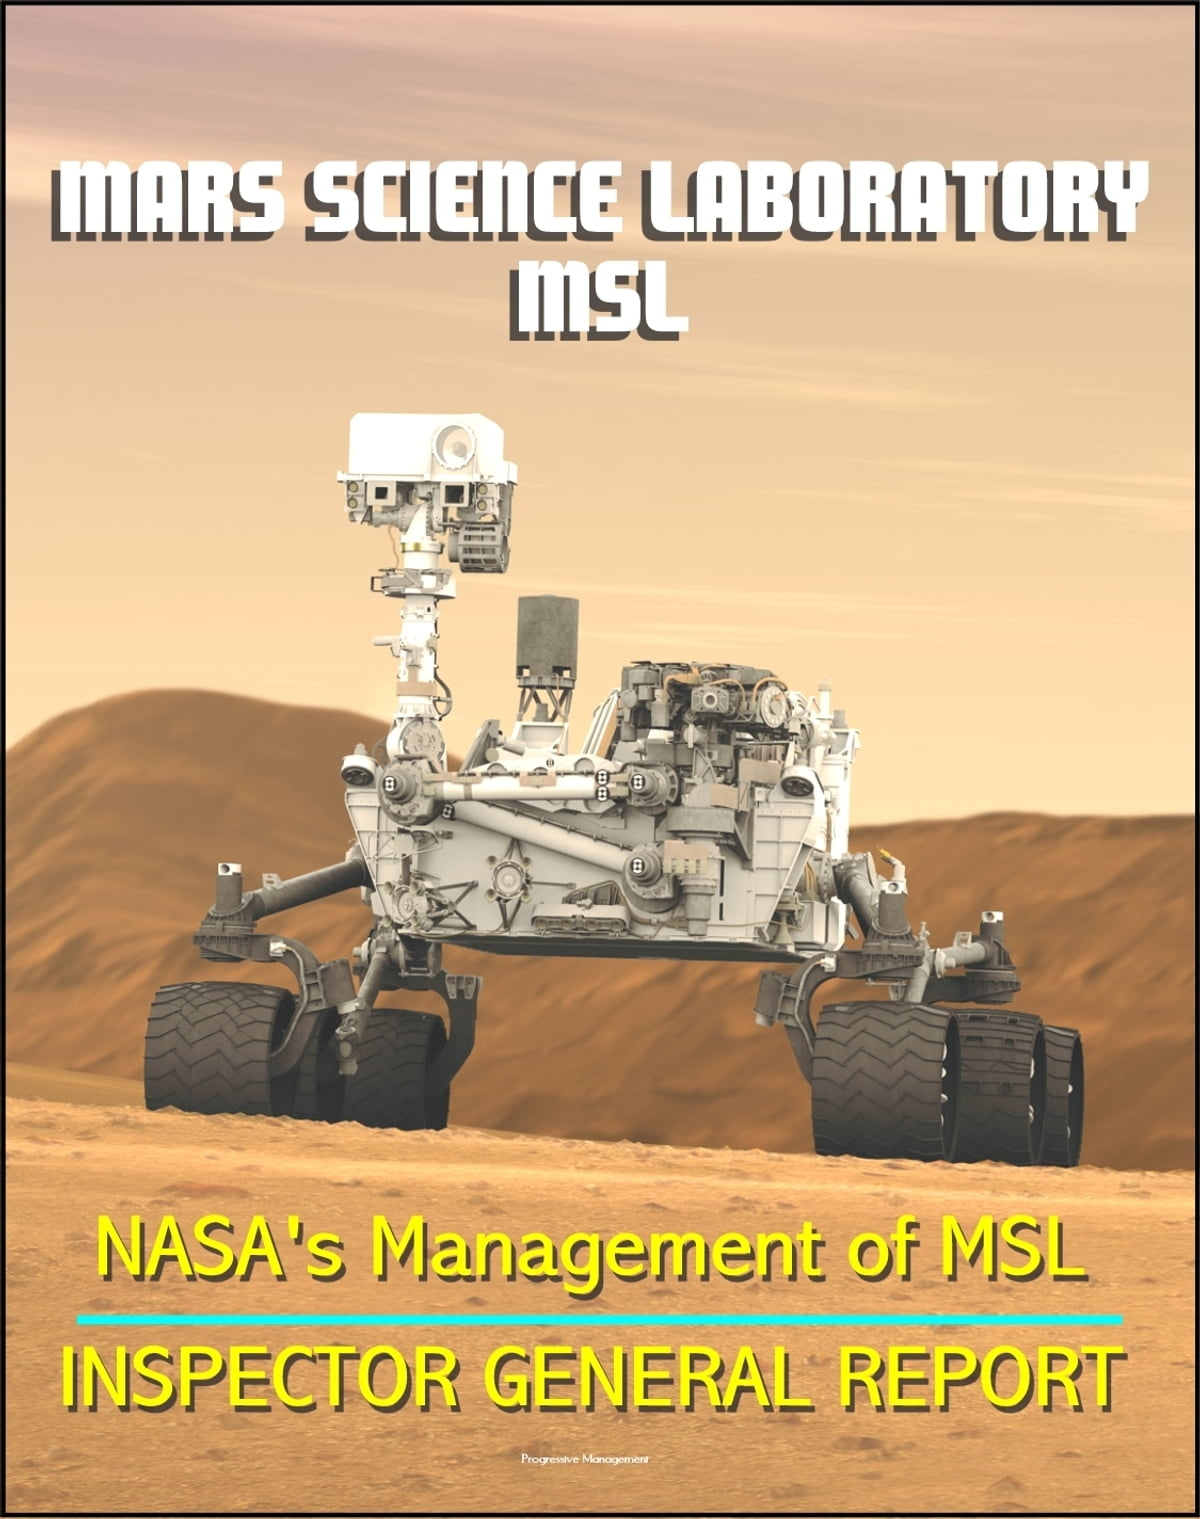 nasas mars rover mission and science ideas - photo #10